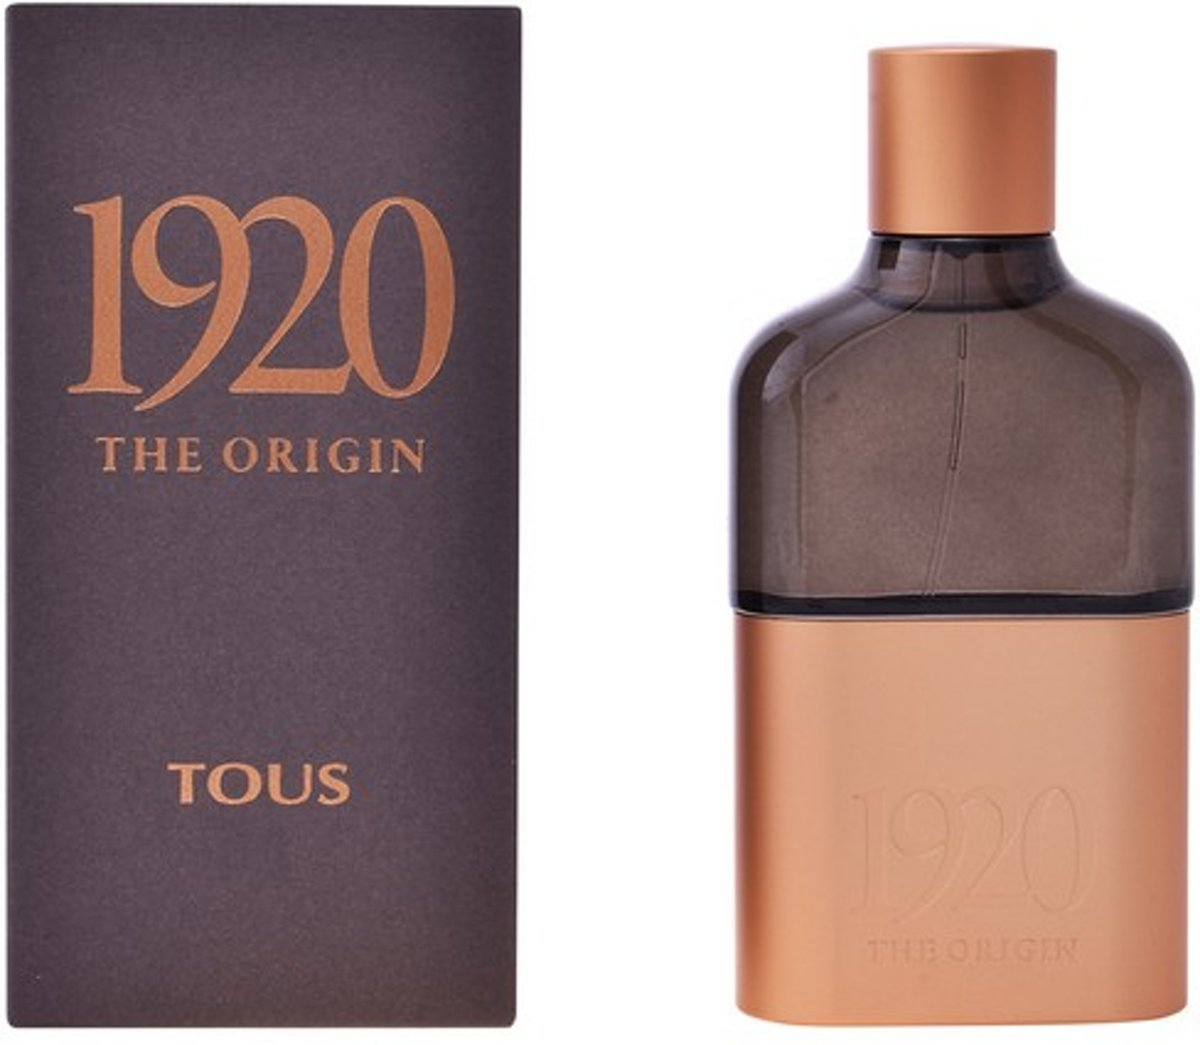 Tous 1920 The Origin - 100 ml - eau de parfum spray - herenparfum